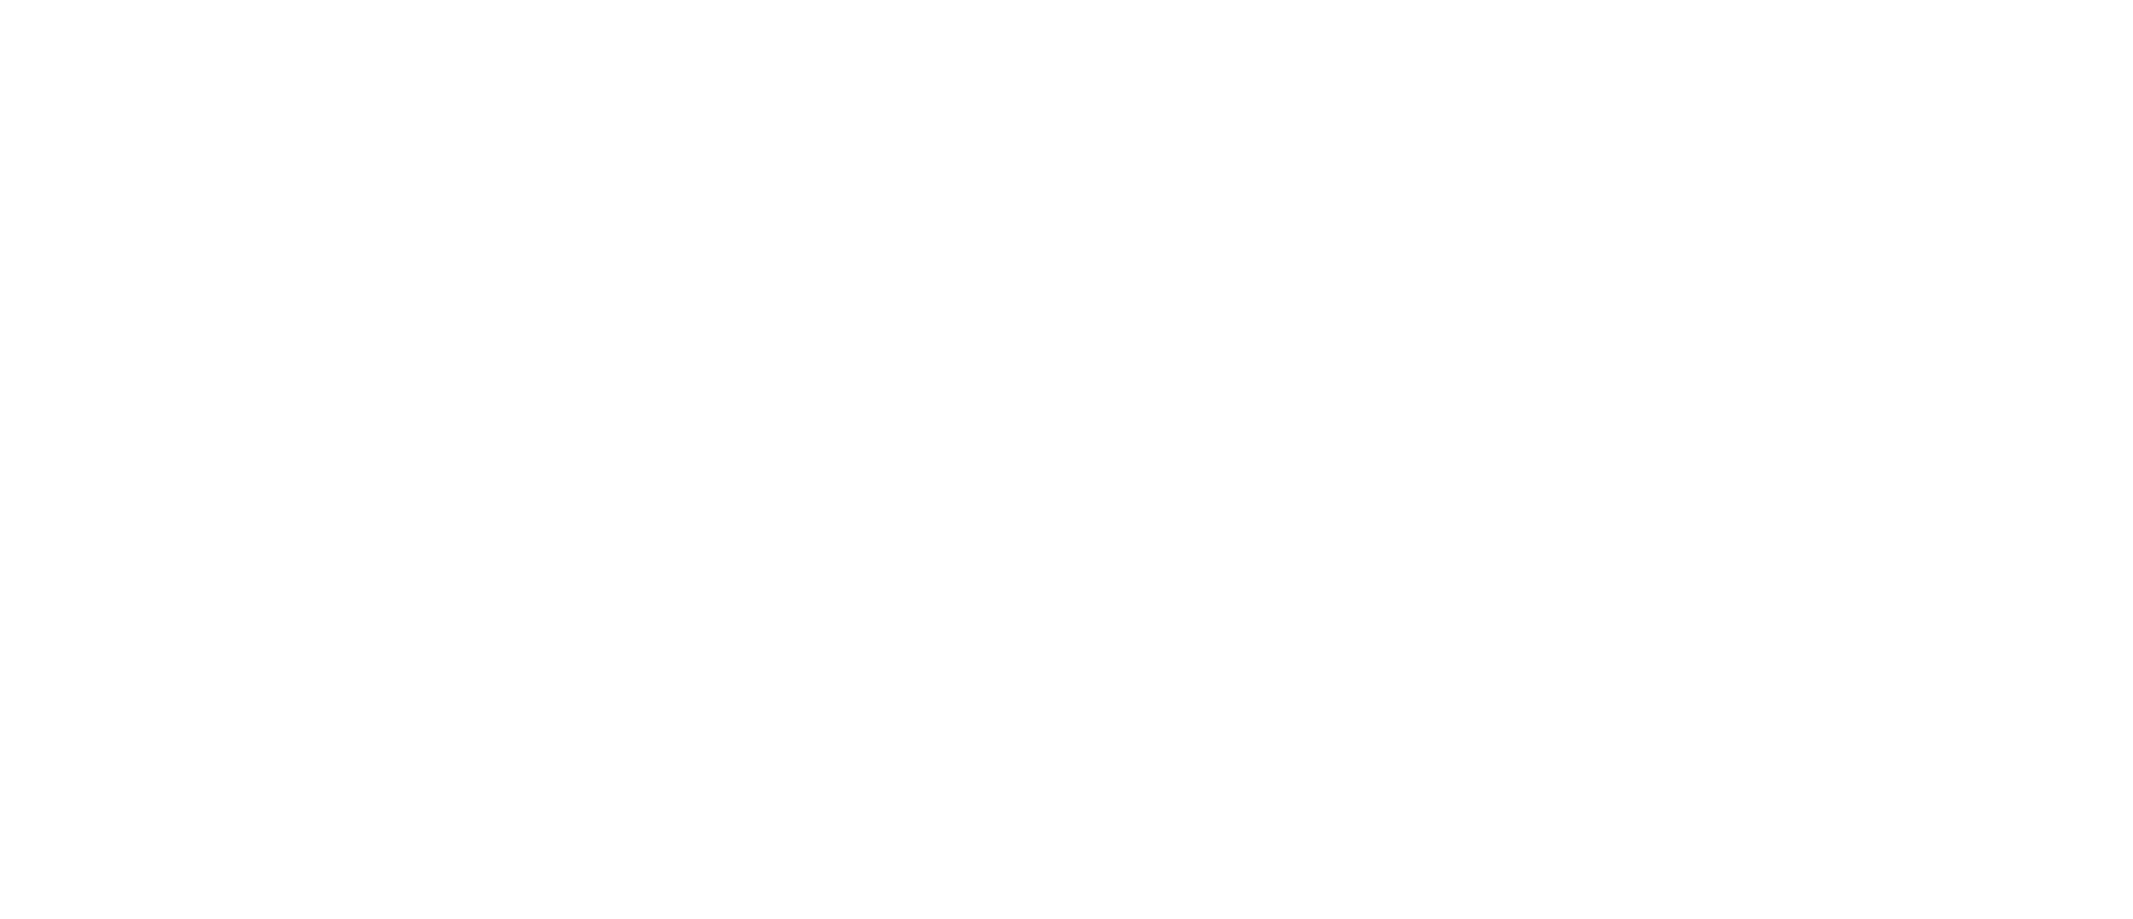 hps-group-logo-Secondary_White.png